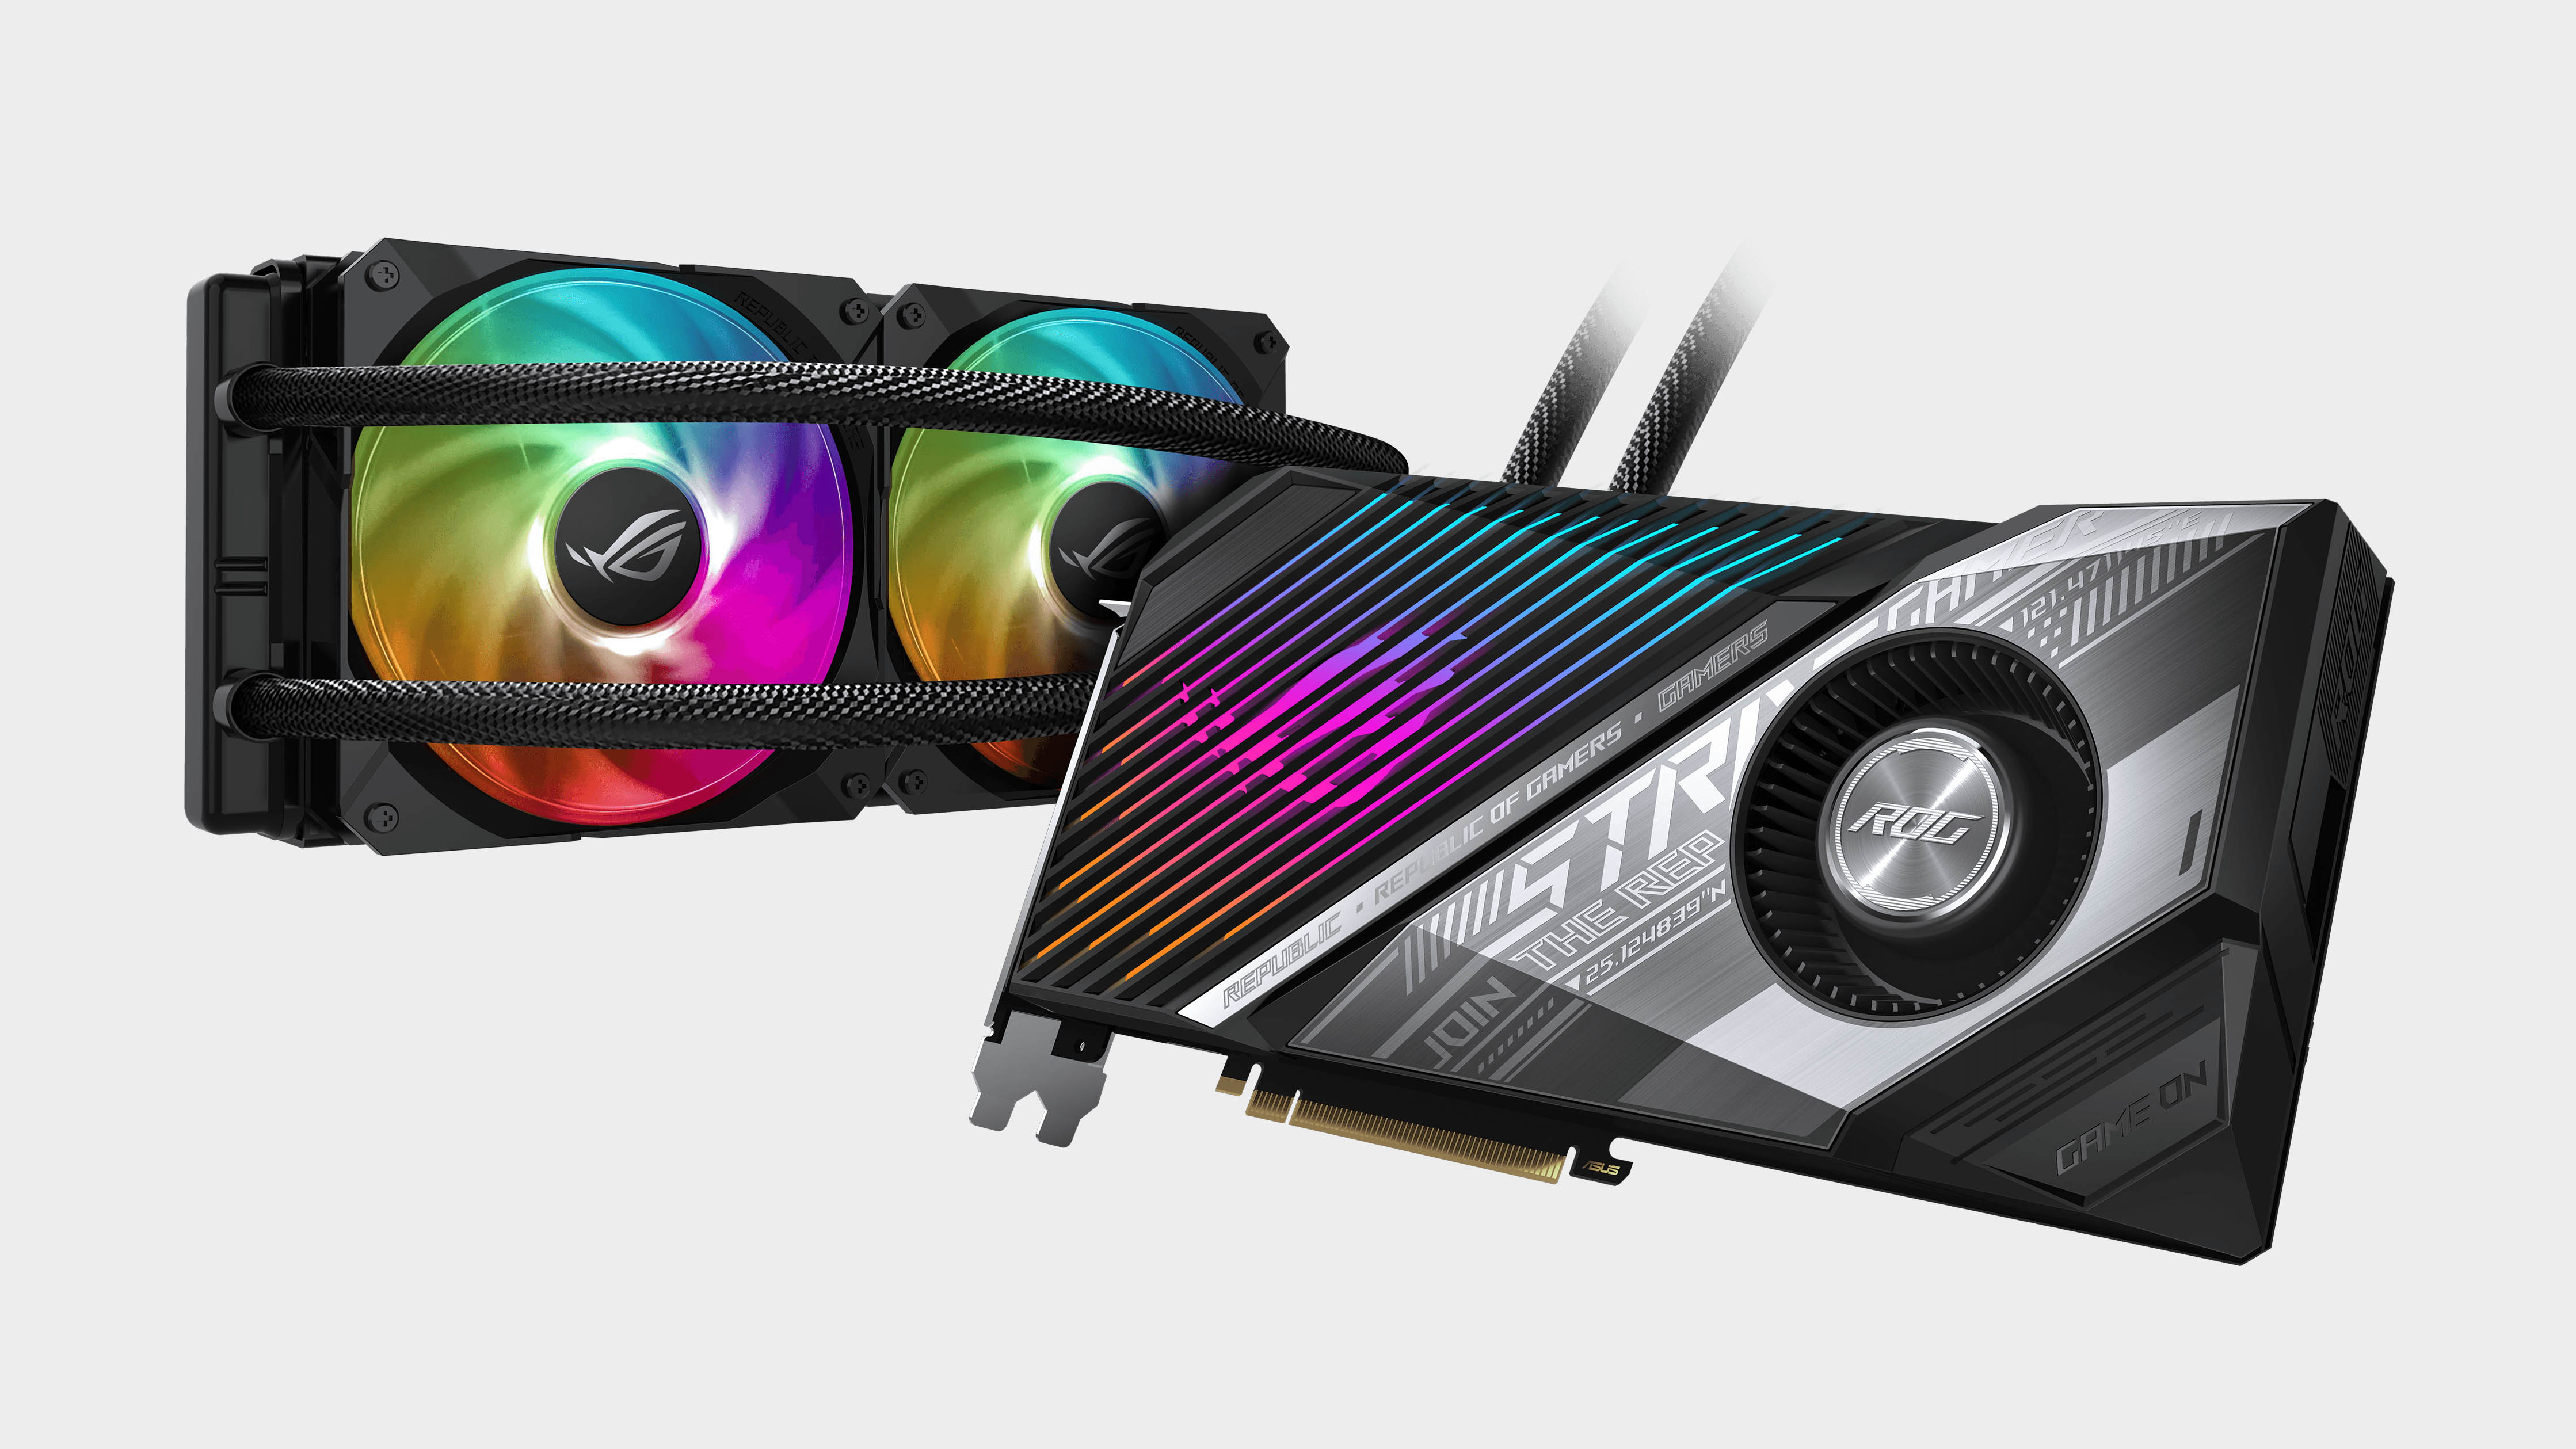 Asus Rog Goes Big On Amd Big Navi With A Water Cooled Radeon Rx 6800 Xt Pc Gamer